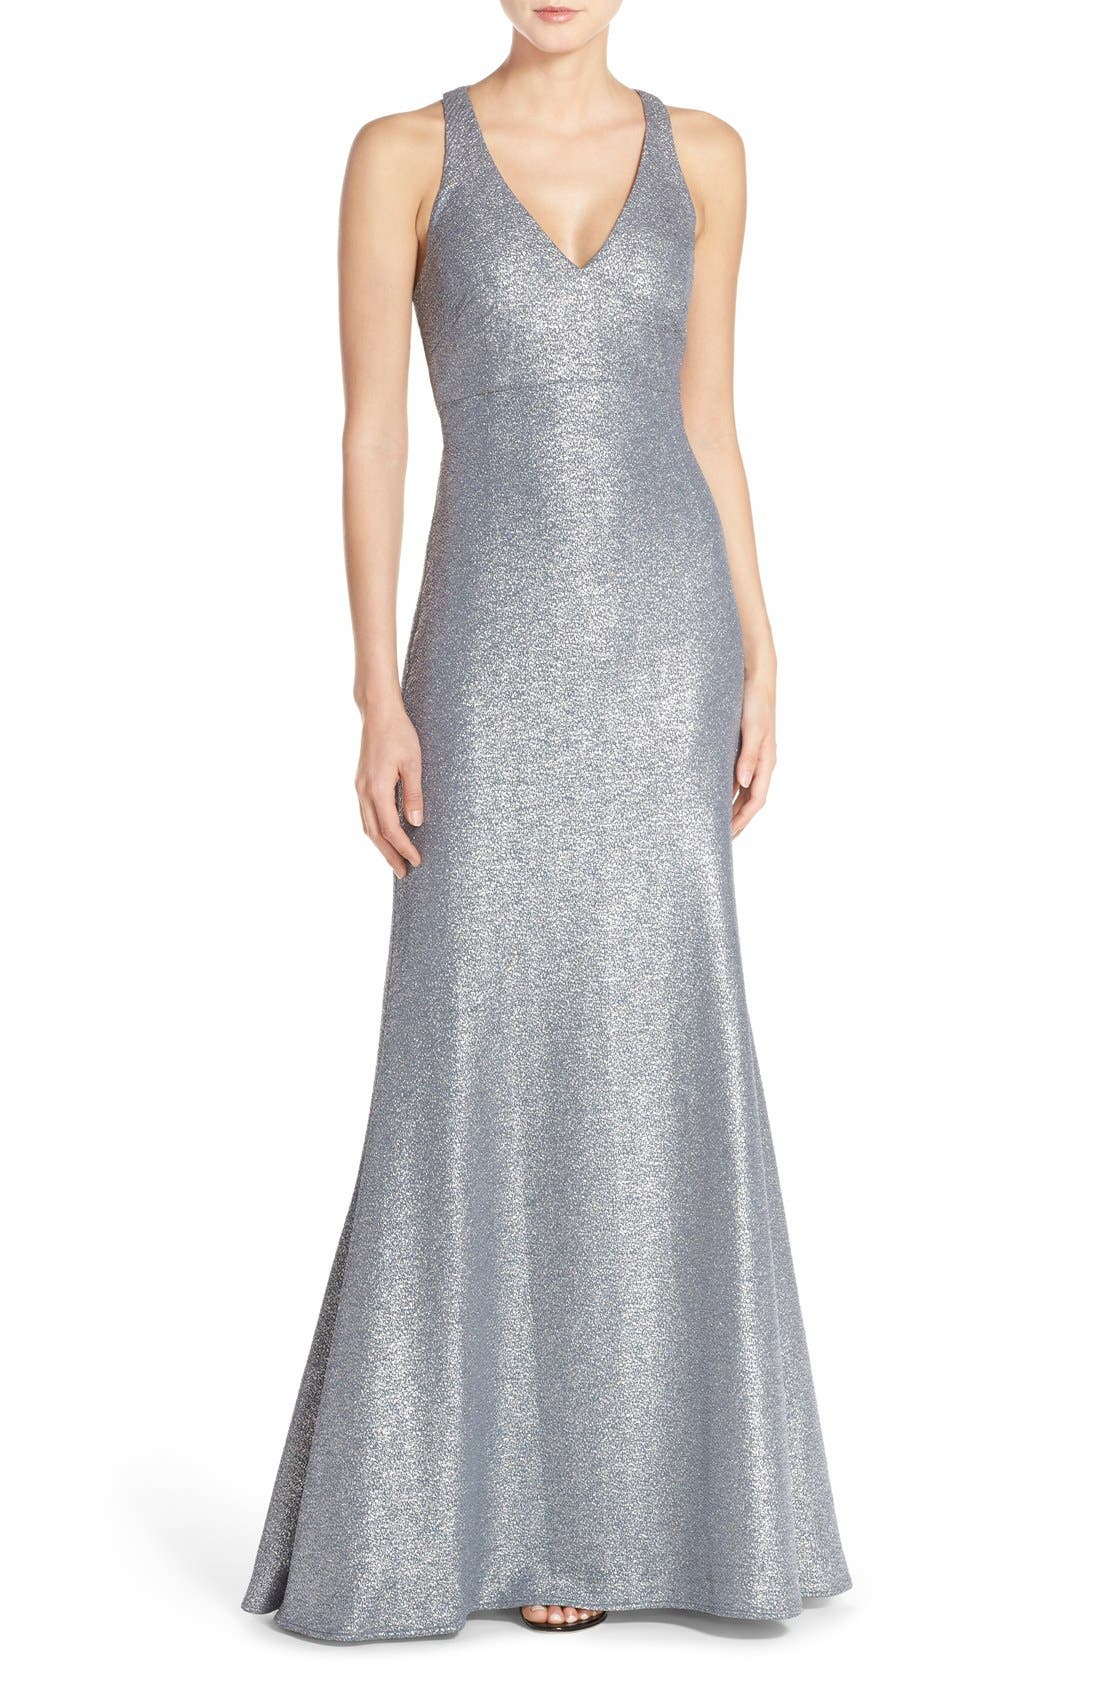 Alternate Image 1 Selected - David Meister Metallic Stretch Cutout Gown